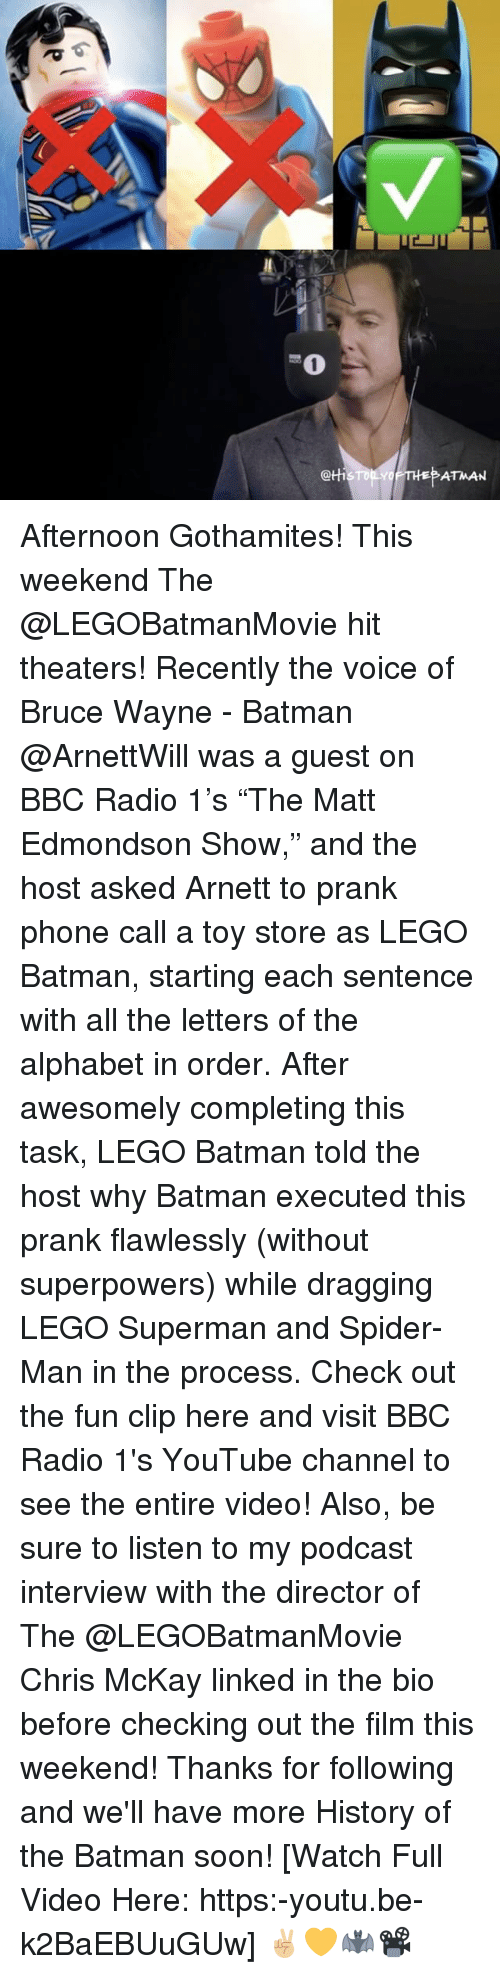 "Wayned: @tti  ATMAN Afternoon Gothamites! This weekend The @LEGOBatmanMovie hit theaters! Recently the voice of Bruce Wayne - Batman @ArnettWill was a guest on BBC Radio 1's ""The Matt Edmondson Show,"" and the host asked Arnett to prank phone call a toy store as LEGO Batman, starting each sentence with all the letters of the alphabet in order. After awesomely completing this task, LEGO Batman told the host why Batman executed this prank flawlessly (without superpowers) while dragging LEGO Superman and Spider-Man in the process. Check out the fun clip here and visit BBC Radio 1's YouTube channel to see the entire video! Also, be sure to listen to my podcast interview with the director of The @LEGOBatmanMovie Chris McKay linked in the bio before checking out the film this weekend! Thanks for following and we'll have more History of the Batman soon! [Watch Full Video Here: https:-youtu.be-k2BaEBUuGUw] ✌🏼💛🦇📽"